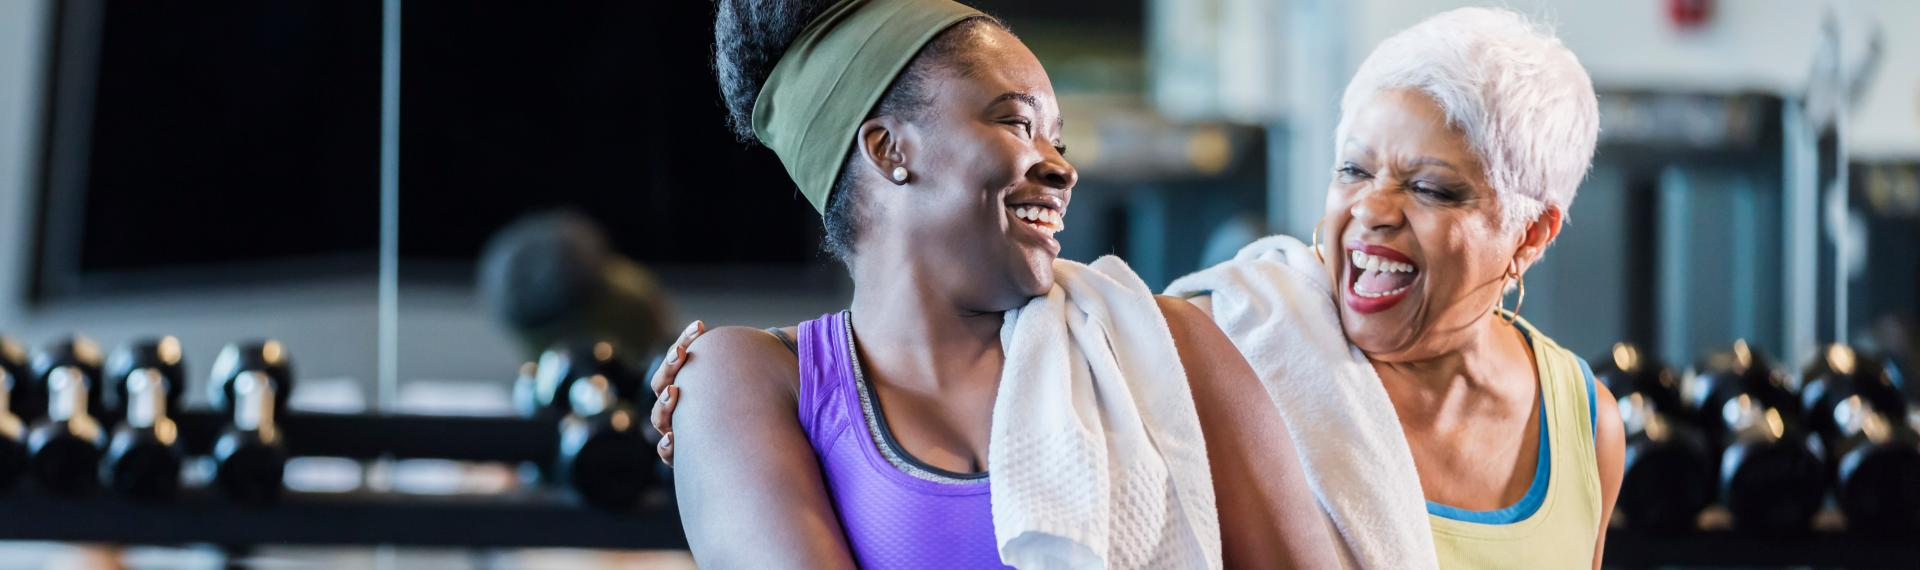 Two women in the gym looking at each other and laughing.